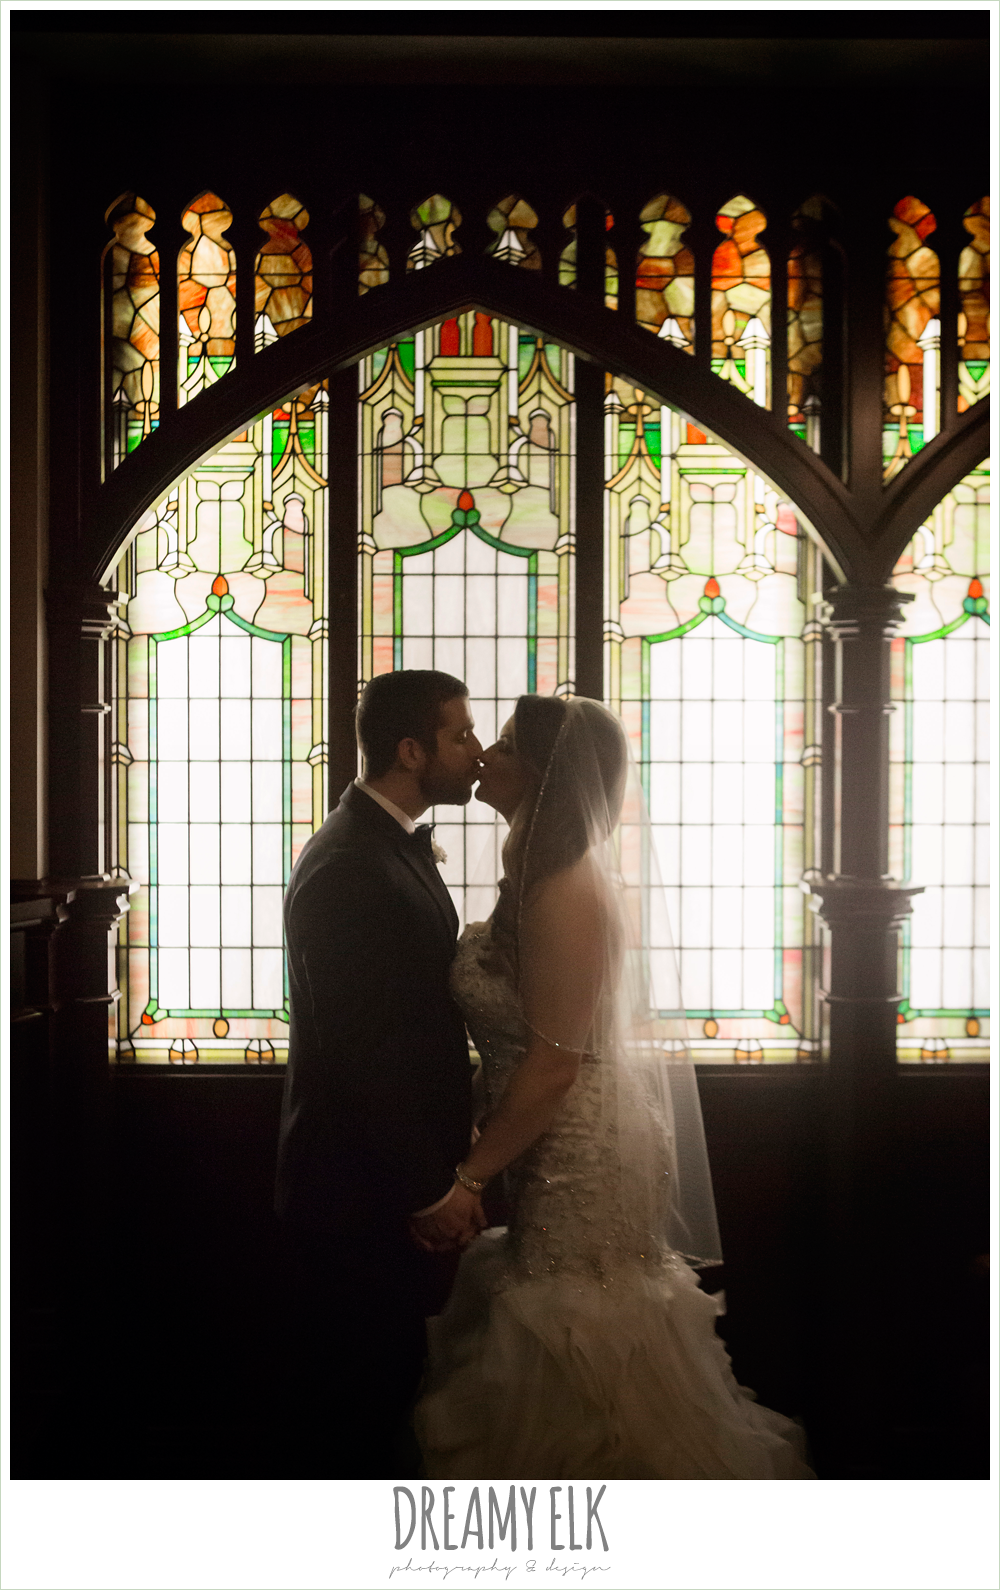 illusion back, sweetheart strapless mermaid wedding dress, wedding hair down over one shoulder, ruffle skirt, first methodist church chapel, bride and groom, stained glass, spring wedding, magnolia hotel, houston, texas {dreamy elk photography and design}